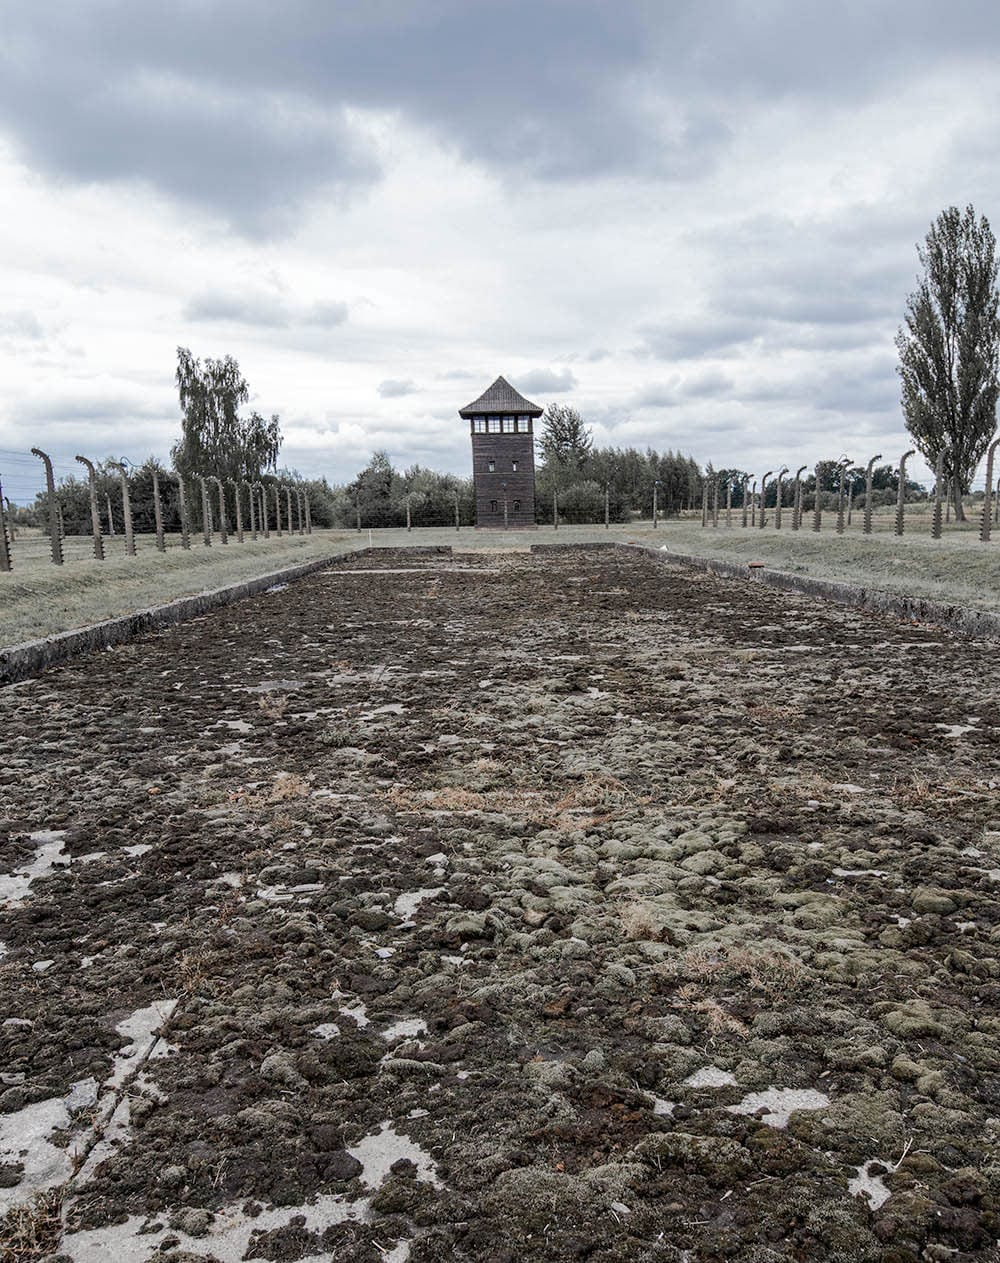 visit_Auschwitz_Birkenau_concentration_camps_holocaust_images